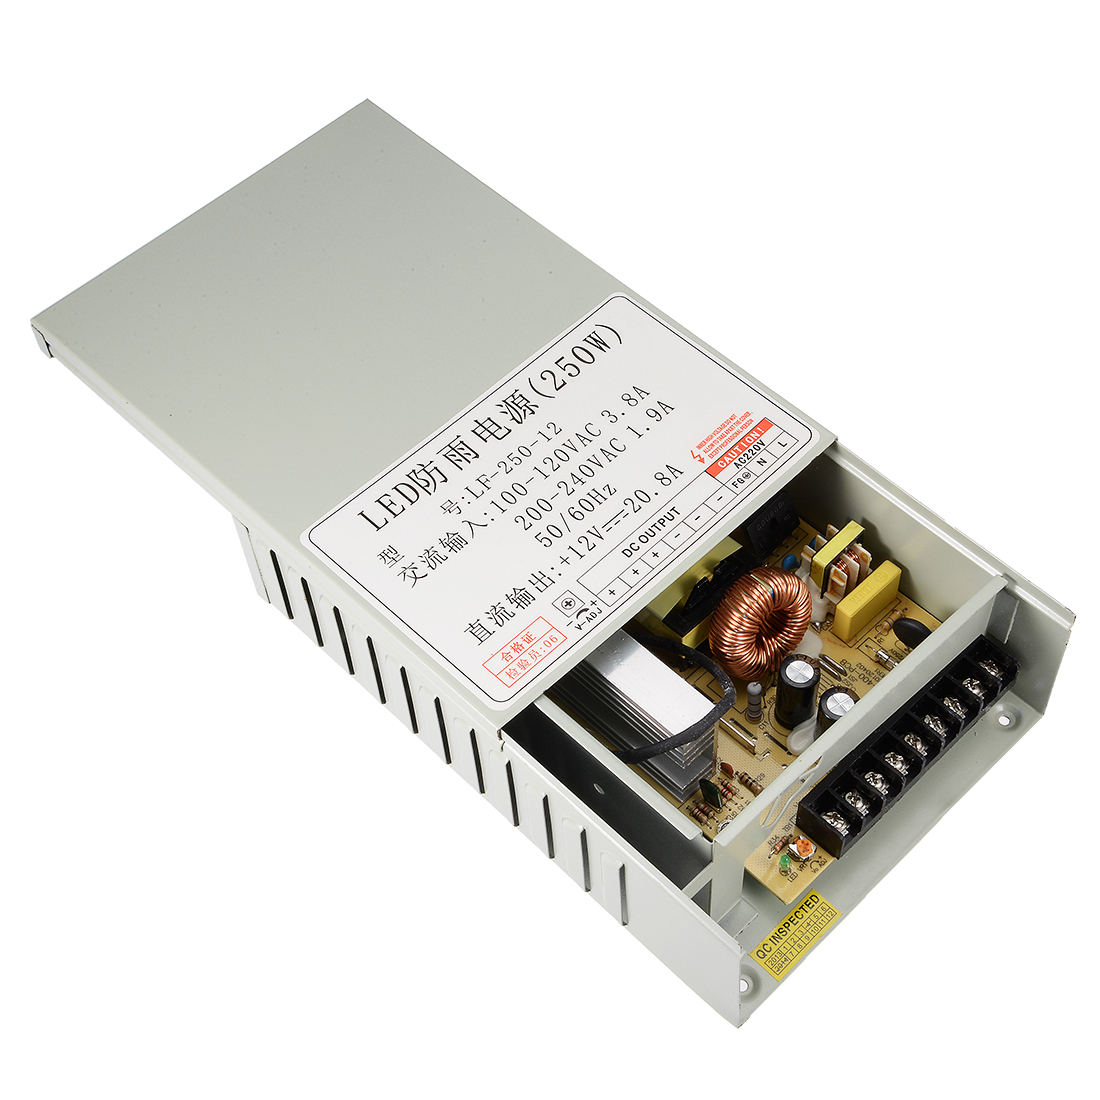 AC 100-120V to DC 12V 20.8A 250W Switching Power Supply for LED Strip Light